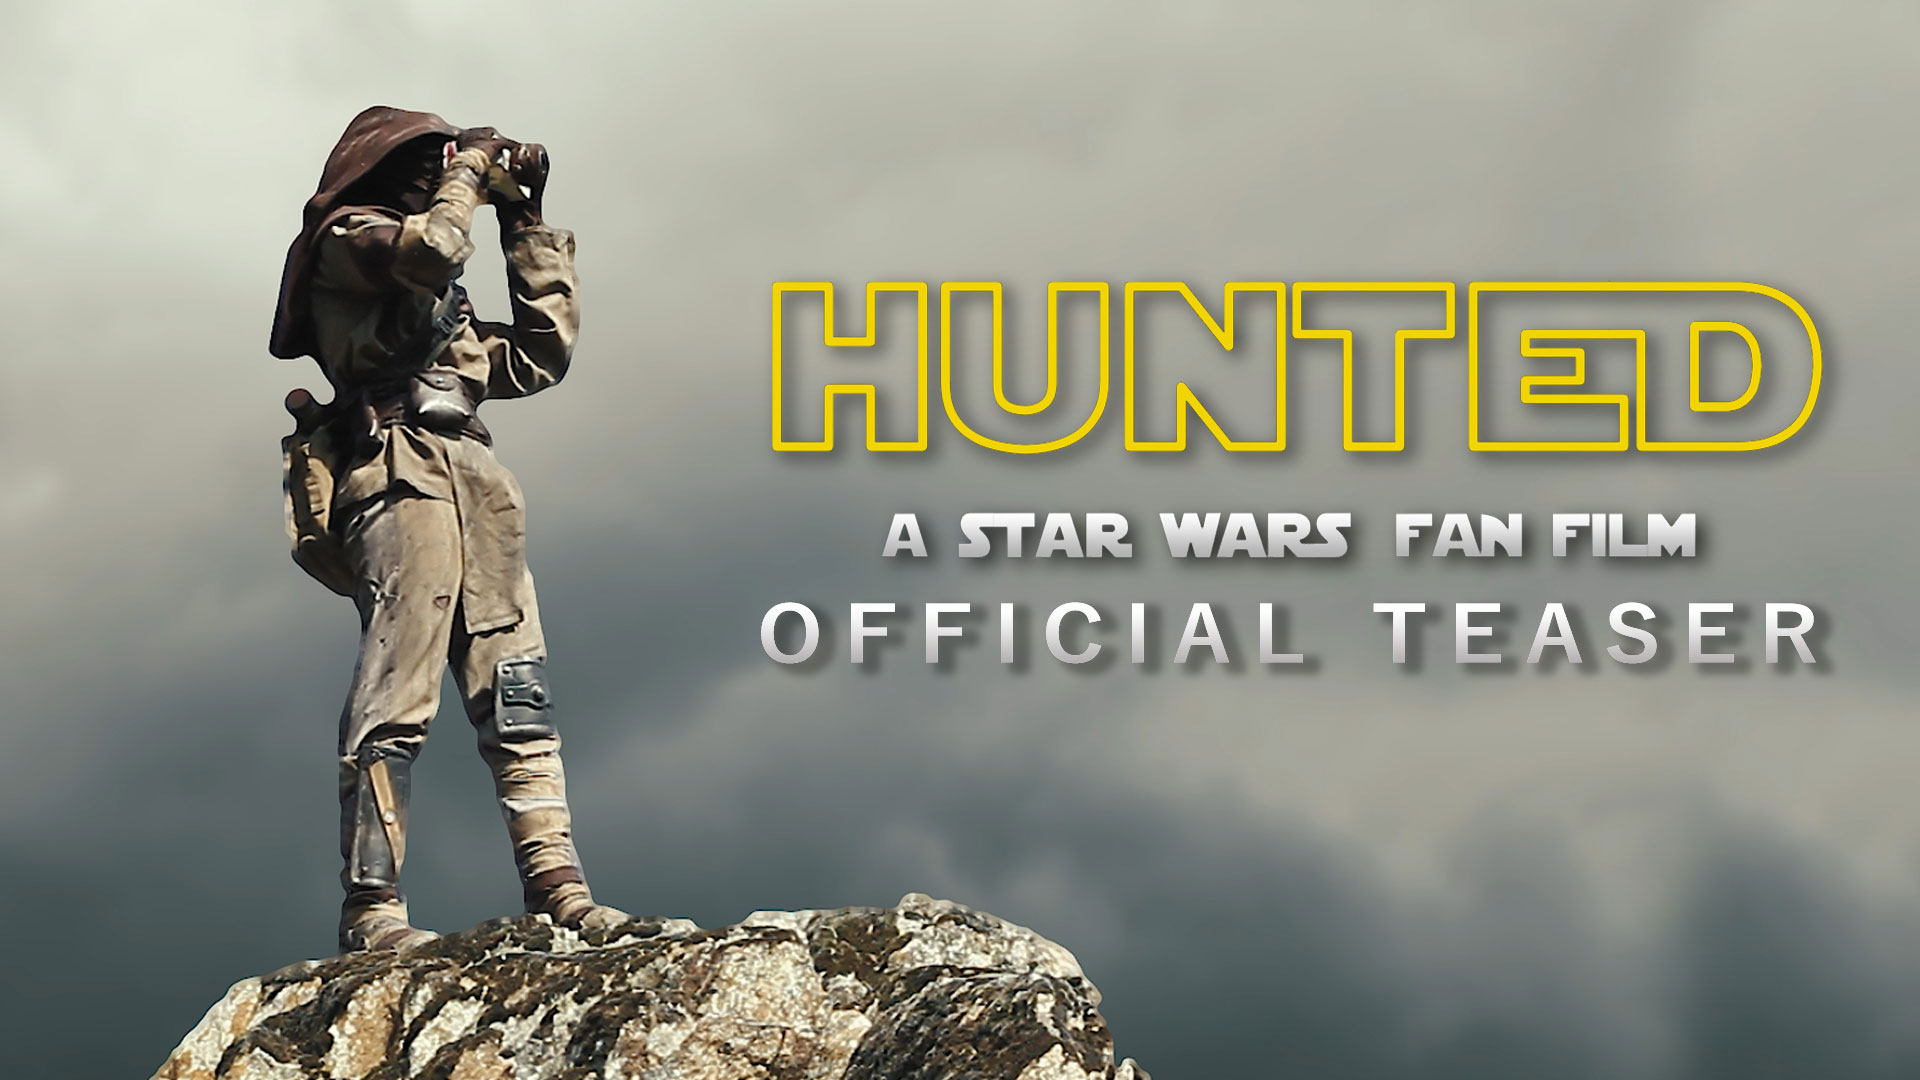 HUNTED: A Star Wars Fan Film Official Teaser